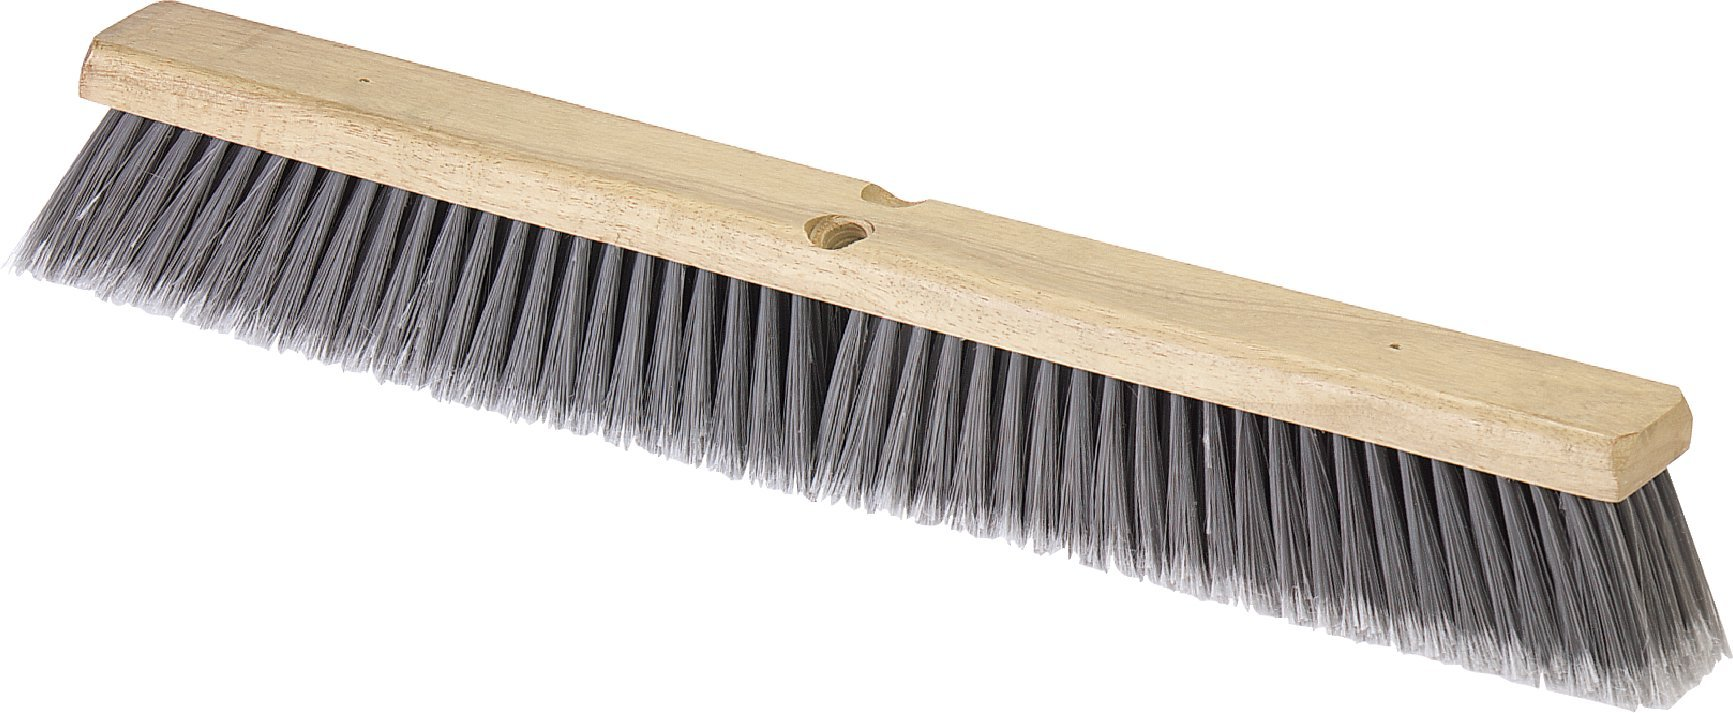 Carlisle 4501623 Flo-Pac Flagged Fine Floor Sweep, Polypropylene Bristles, 36'' Block Size, 3'' Bristle Trim, Gray (Case of 6)